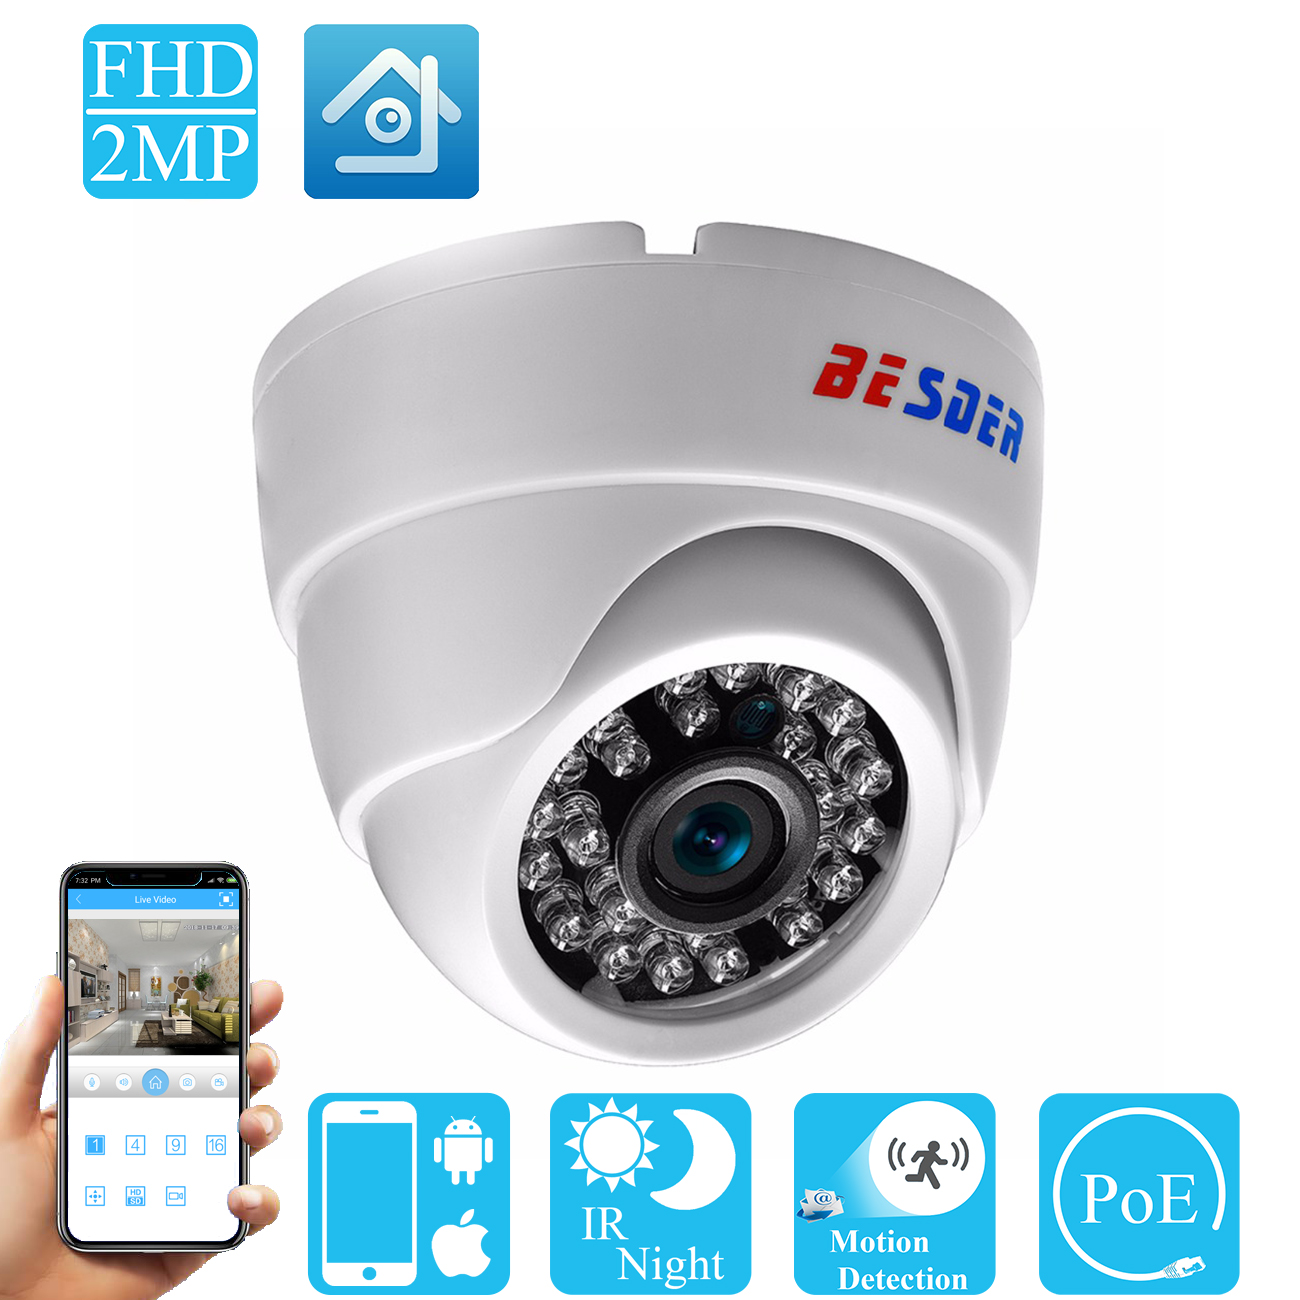 Besder 2.8mm Wide Angle Ip Camera 720p 960p 1080p P2p H.264 Onvif Rtsp 48v Poe Small Cctv Indoor Dome Surveillance Video Camera Commodities Are Available Without Restriction